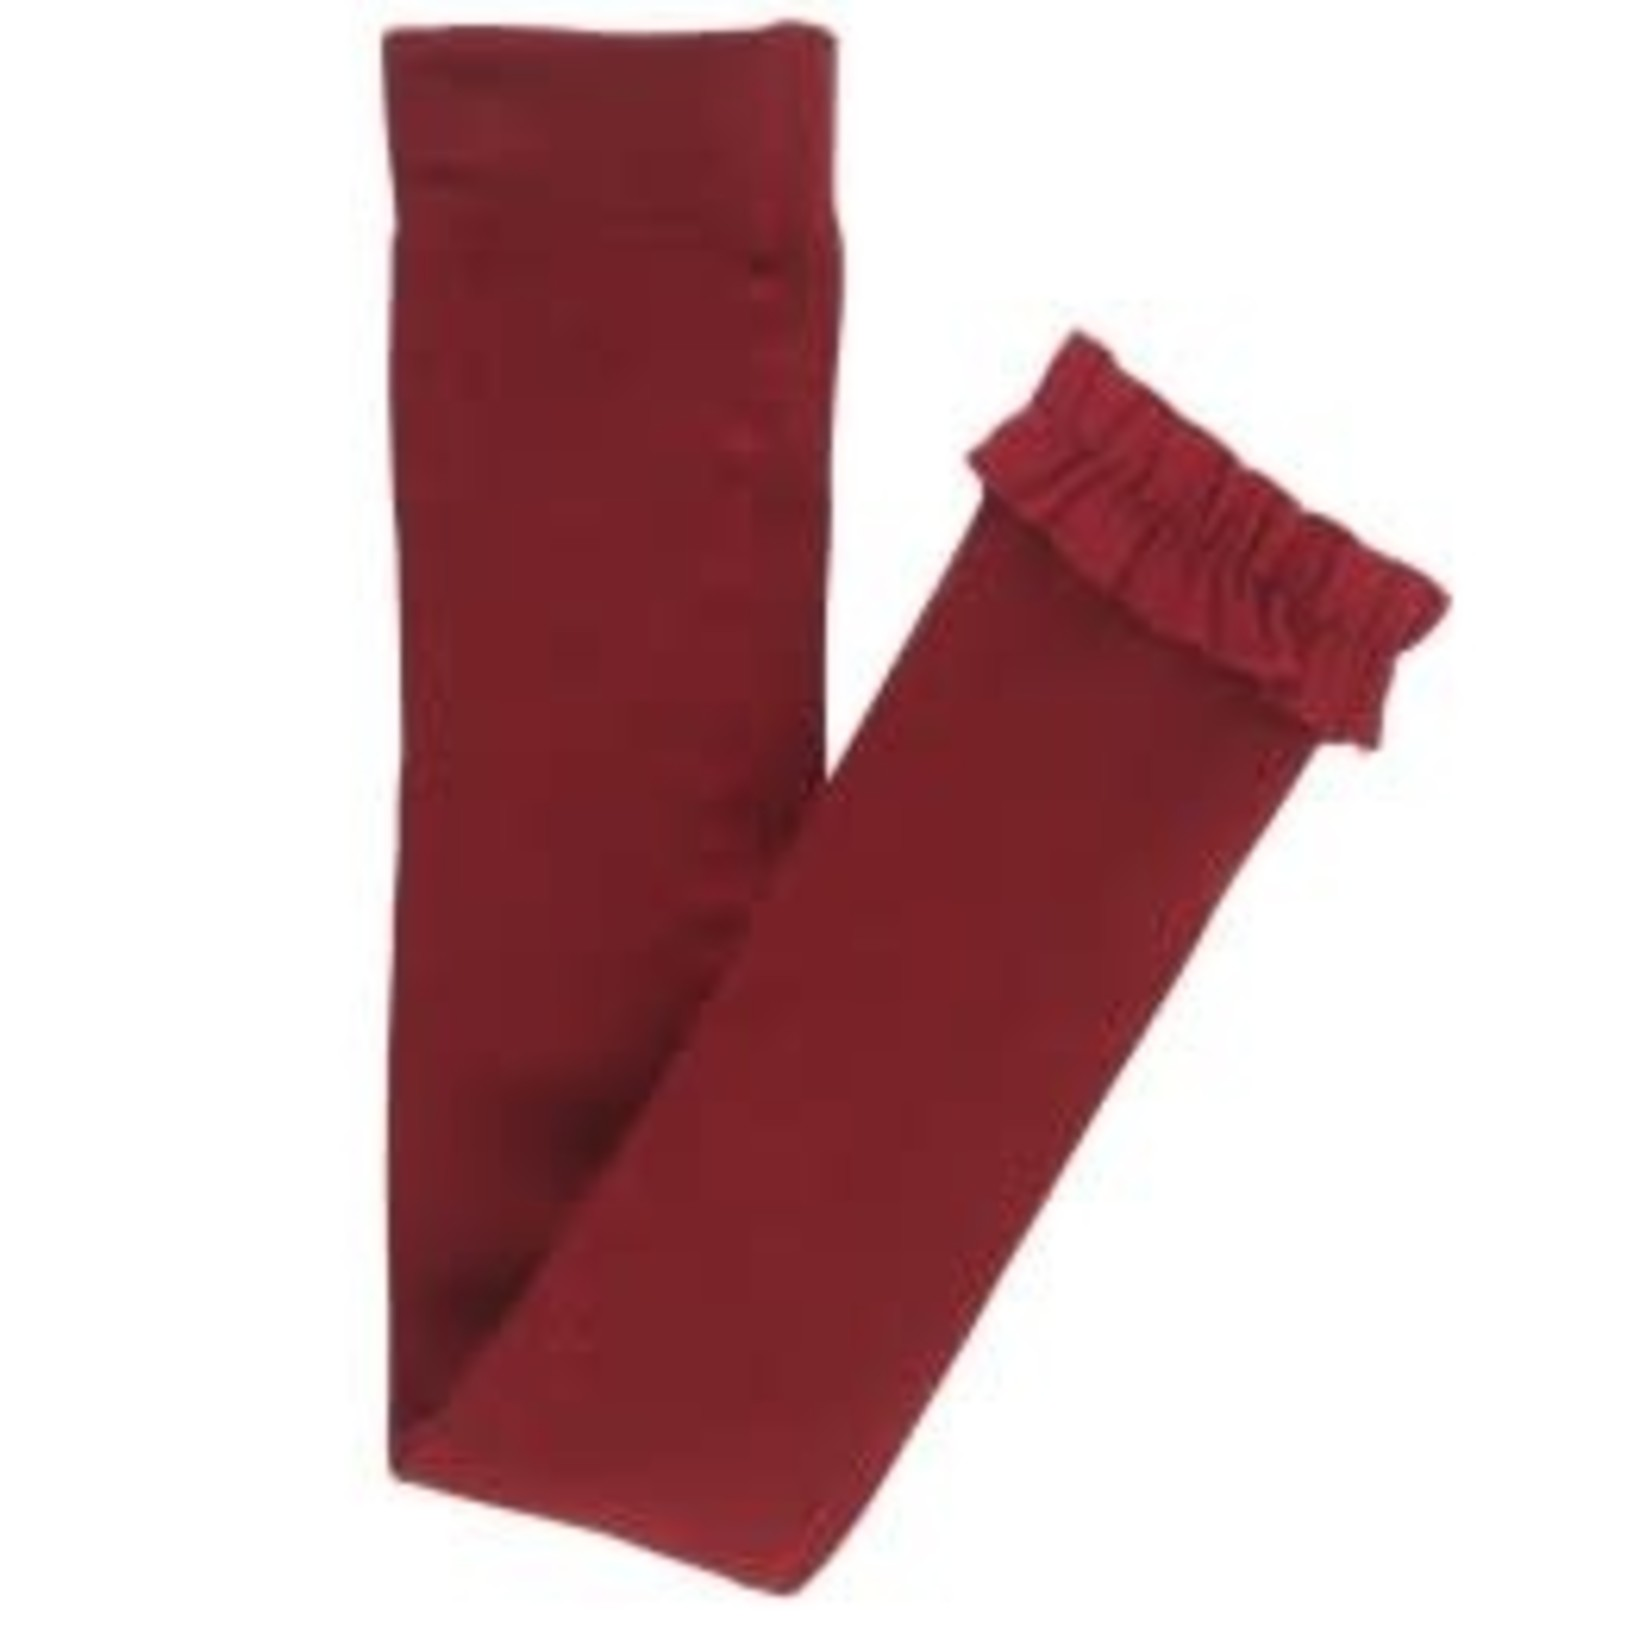 RuffleButts Footless Ruffle Tights, Cranberry 2T-4T